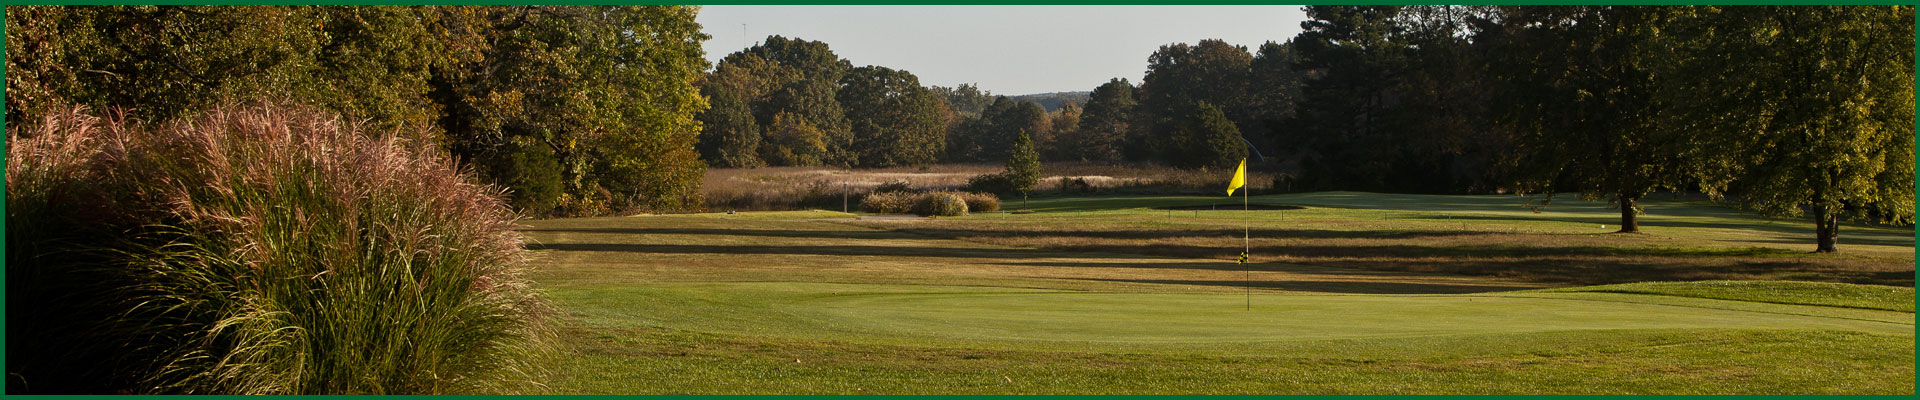 Photo of number 5 green